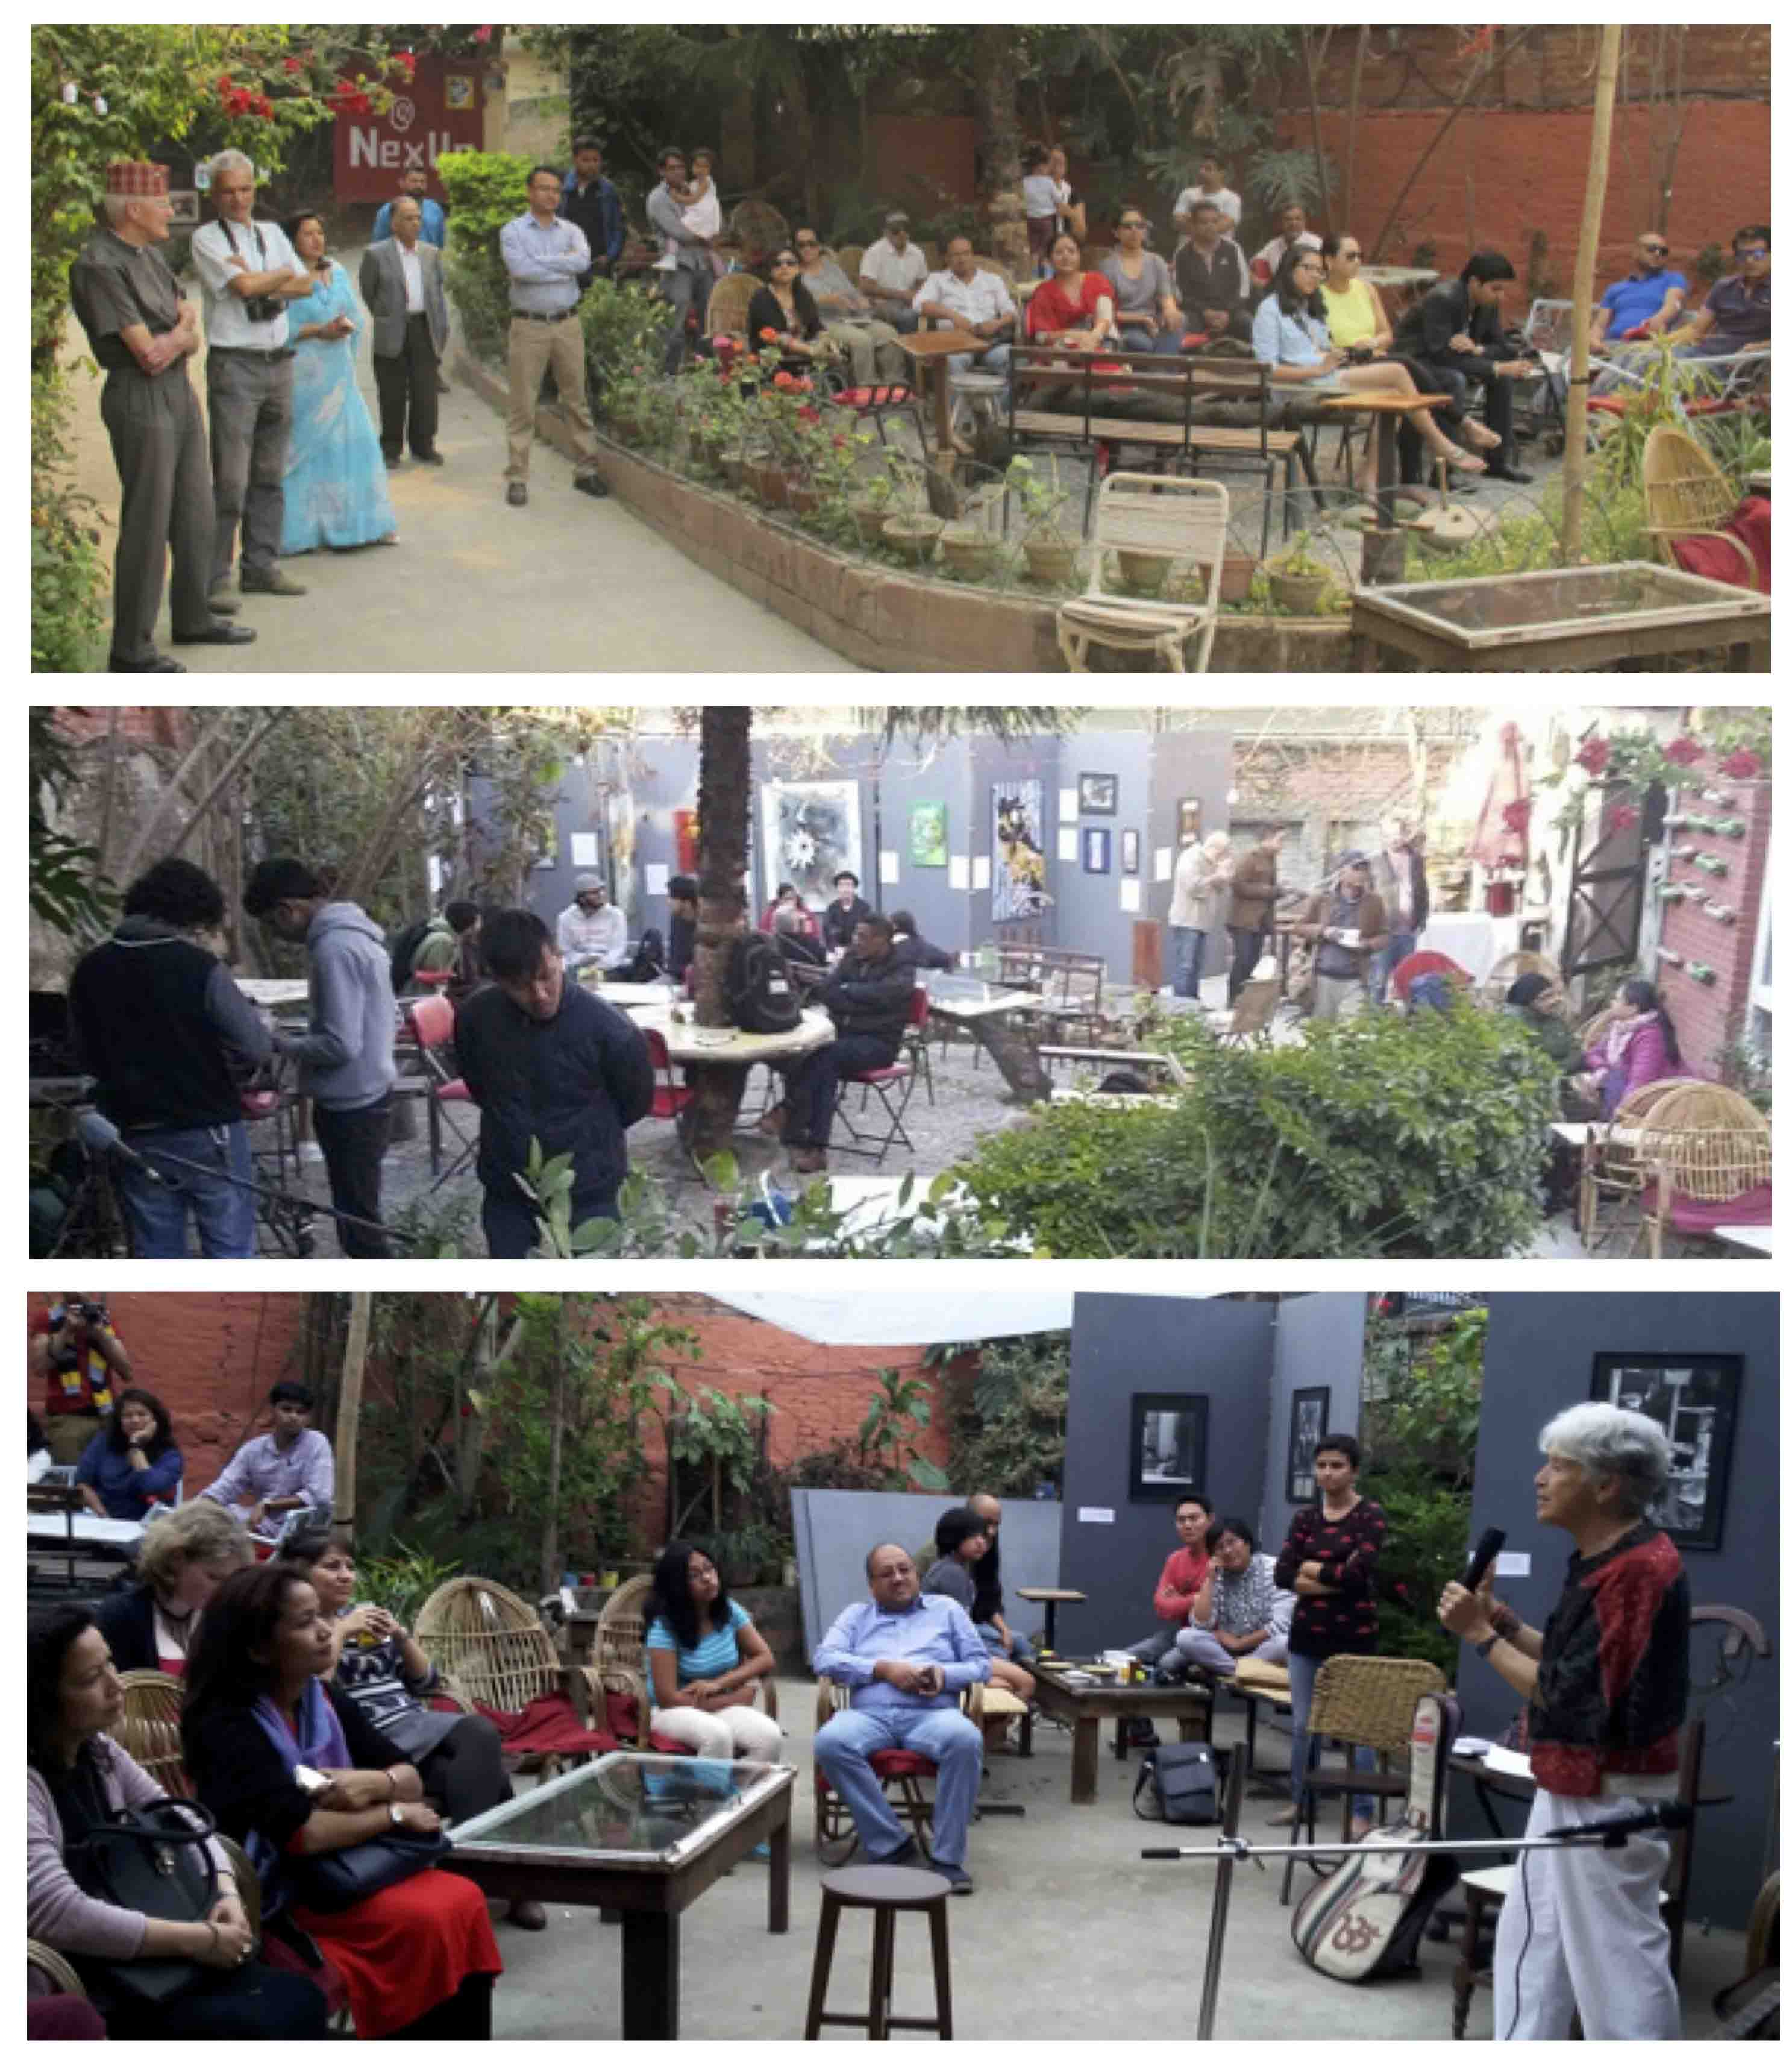 Different events @ LASANAA / NexUs: Top to bottom : a- Delighted Parents watching  Children's Performance, b- Spread the Love Exhibition and Conversation , c- Besty Rose ,  Feminist singer Singing  !